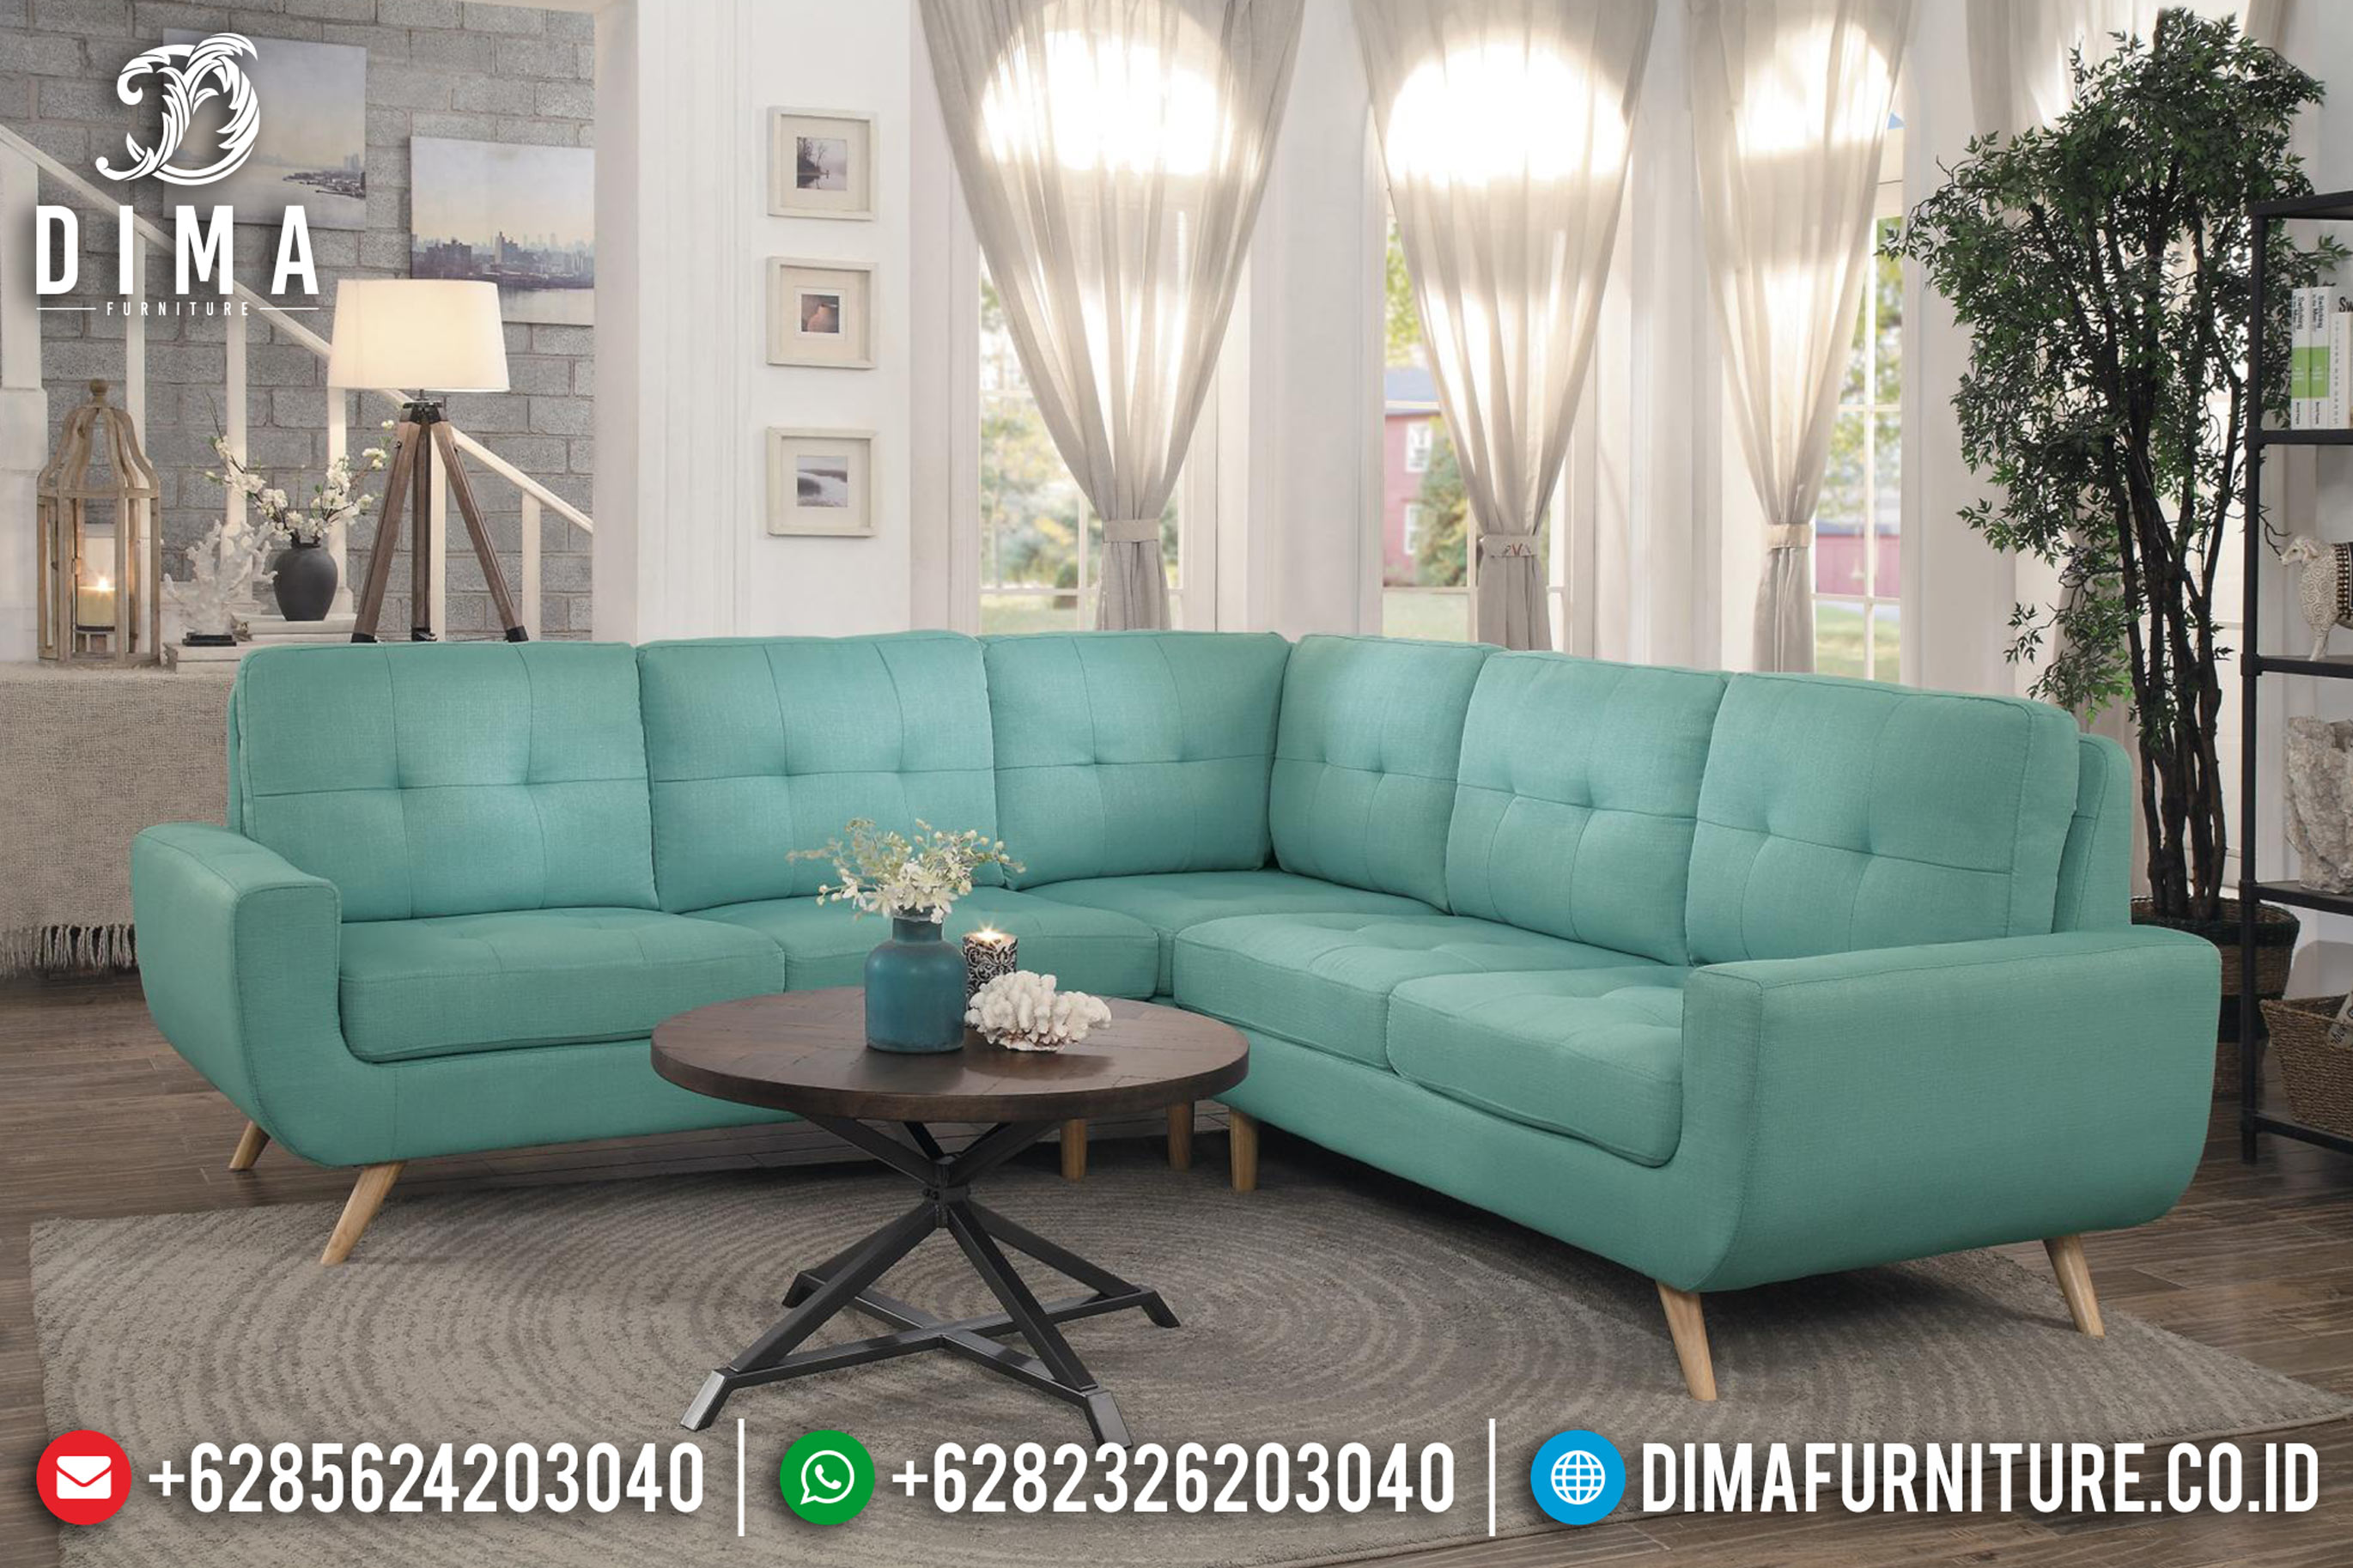 Model Sofa Tamu Jepara 2019-2020 002 Dima Furniture Jepara